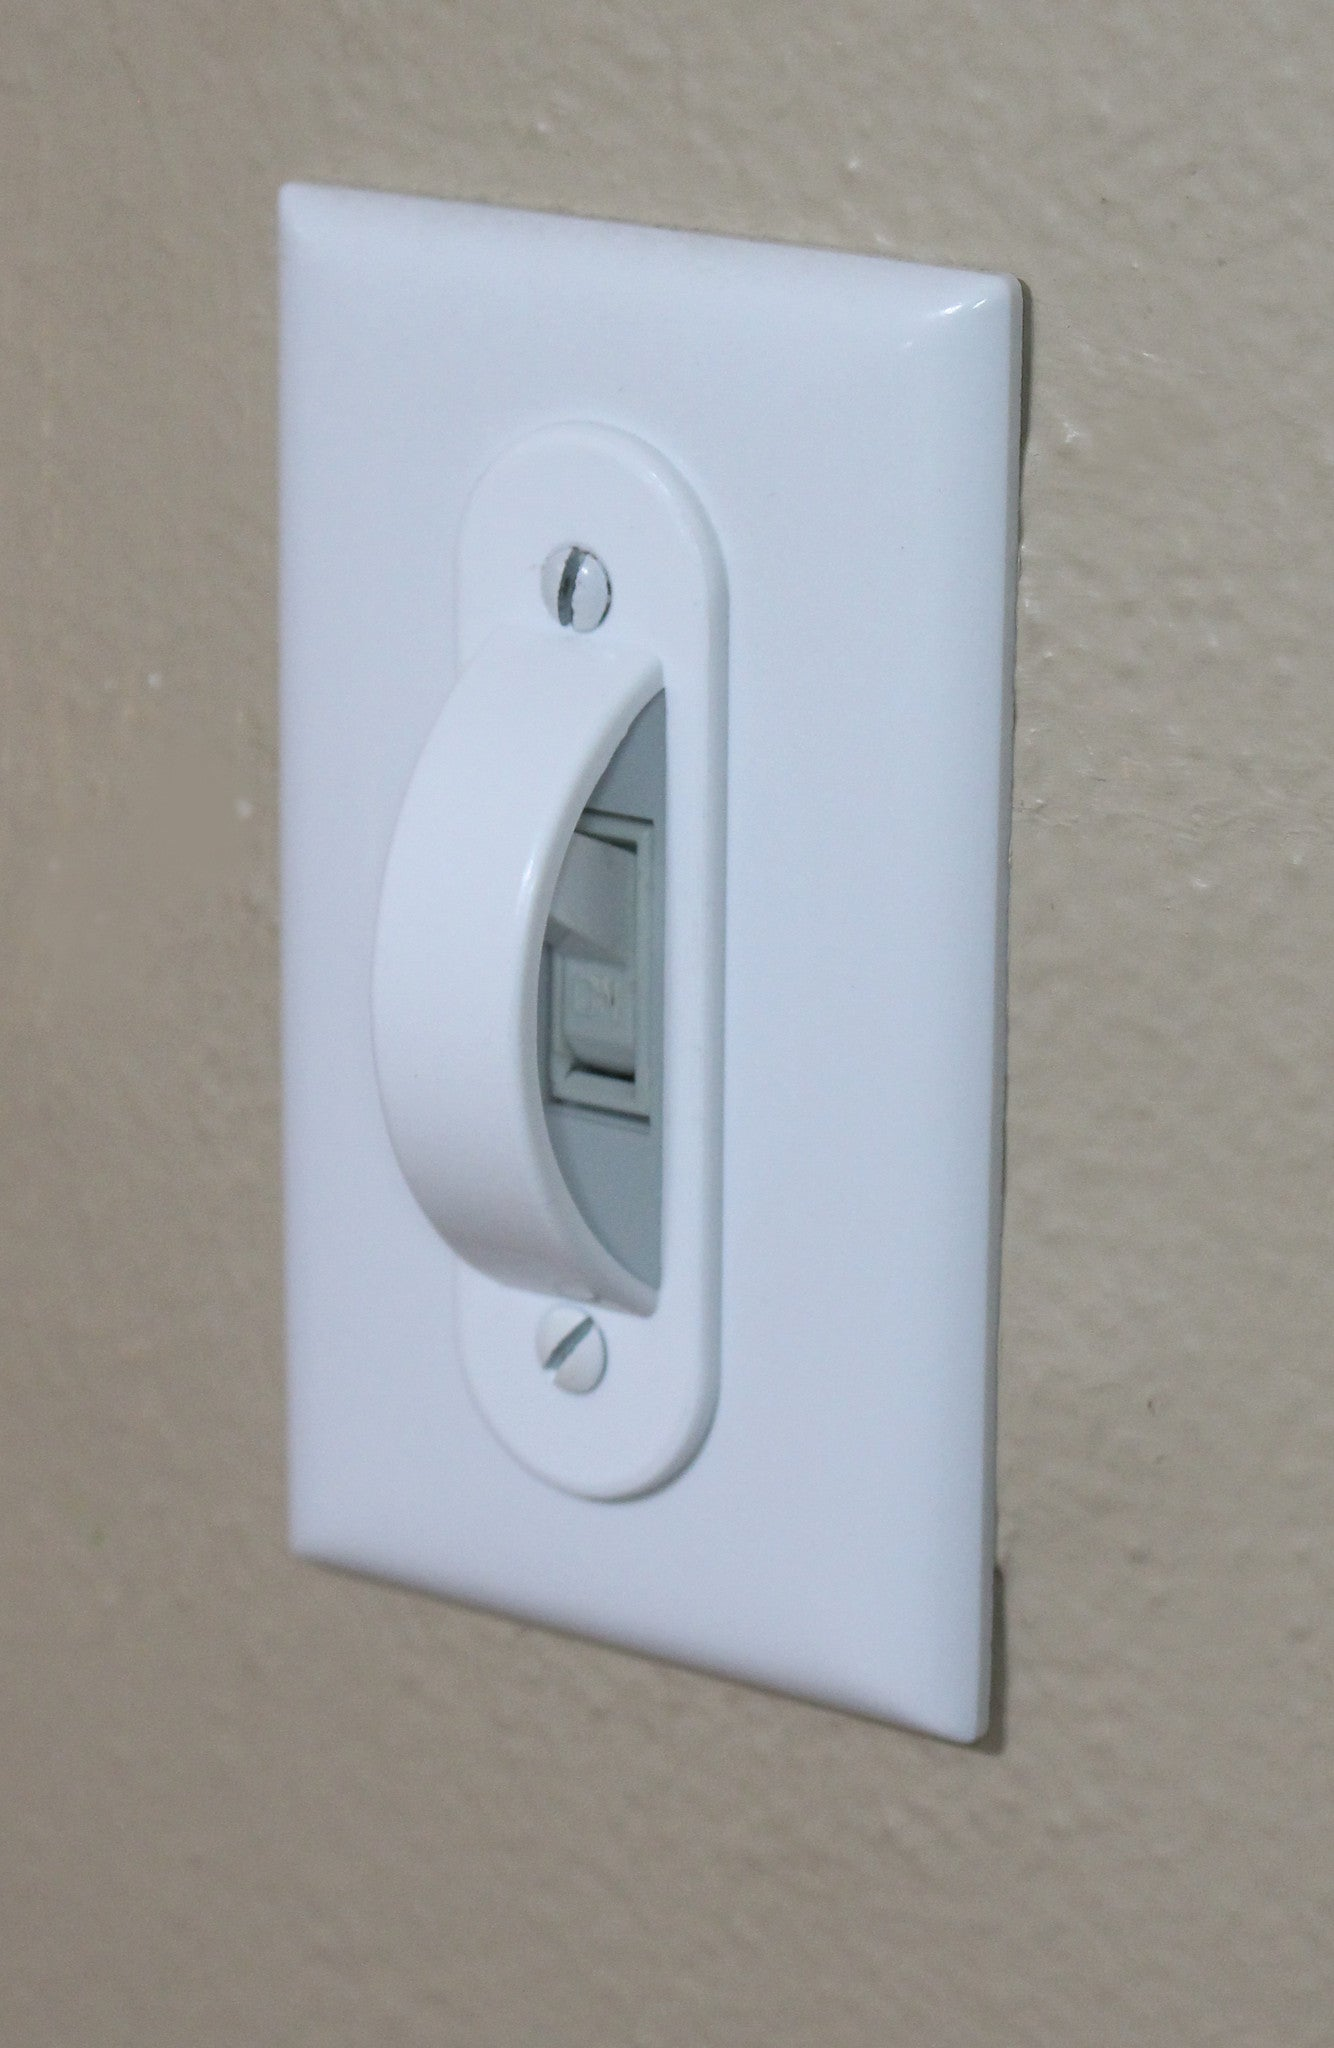 White Switch Plate Cover Guard Keeps Light ON Or Off Protects Your Lights Circuits